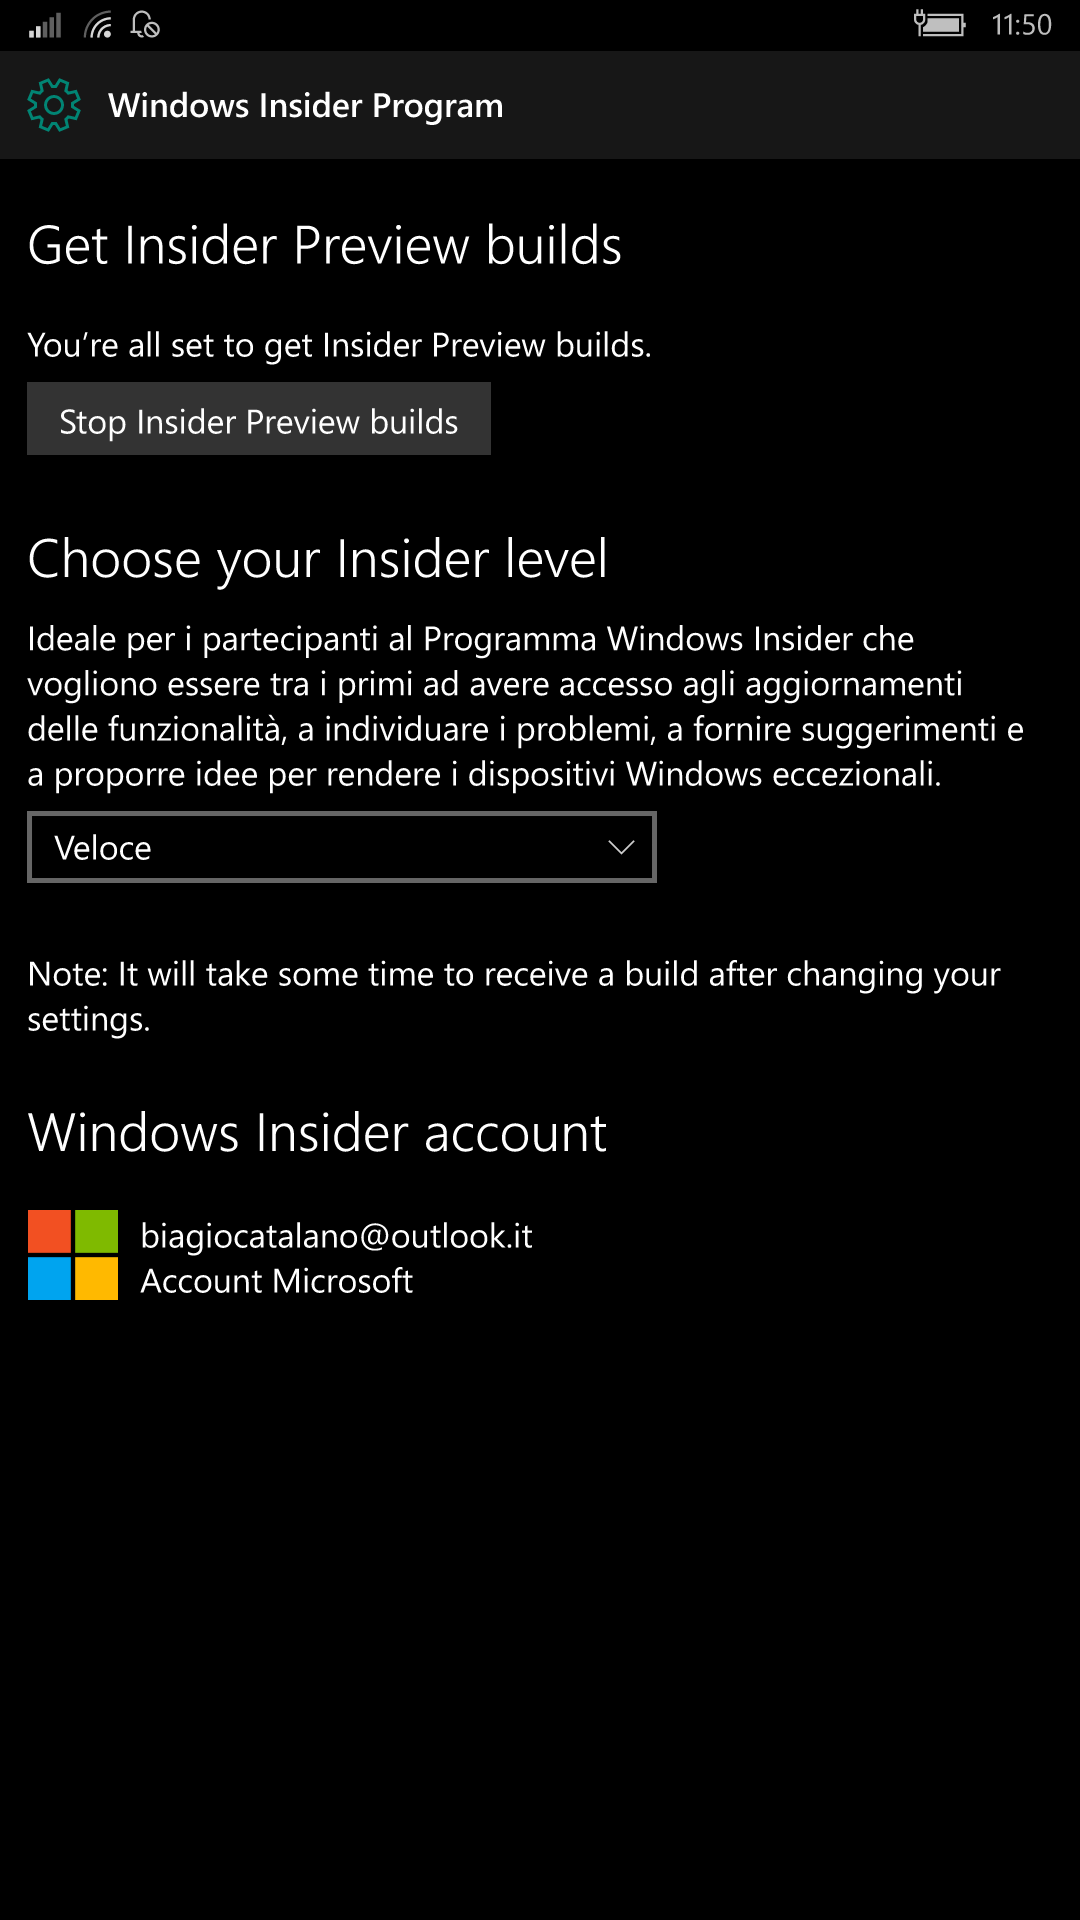 Programma Windows Insider - Windows 10 Mobile 14332.1001